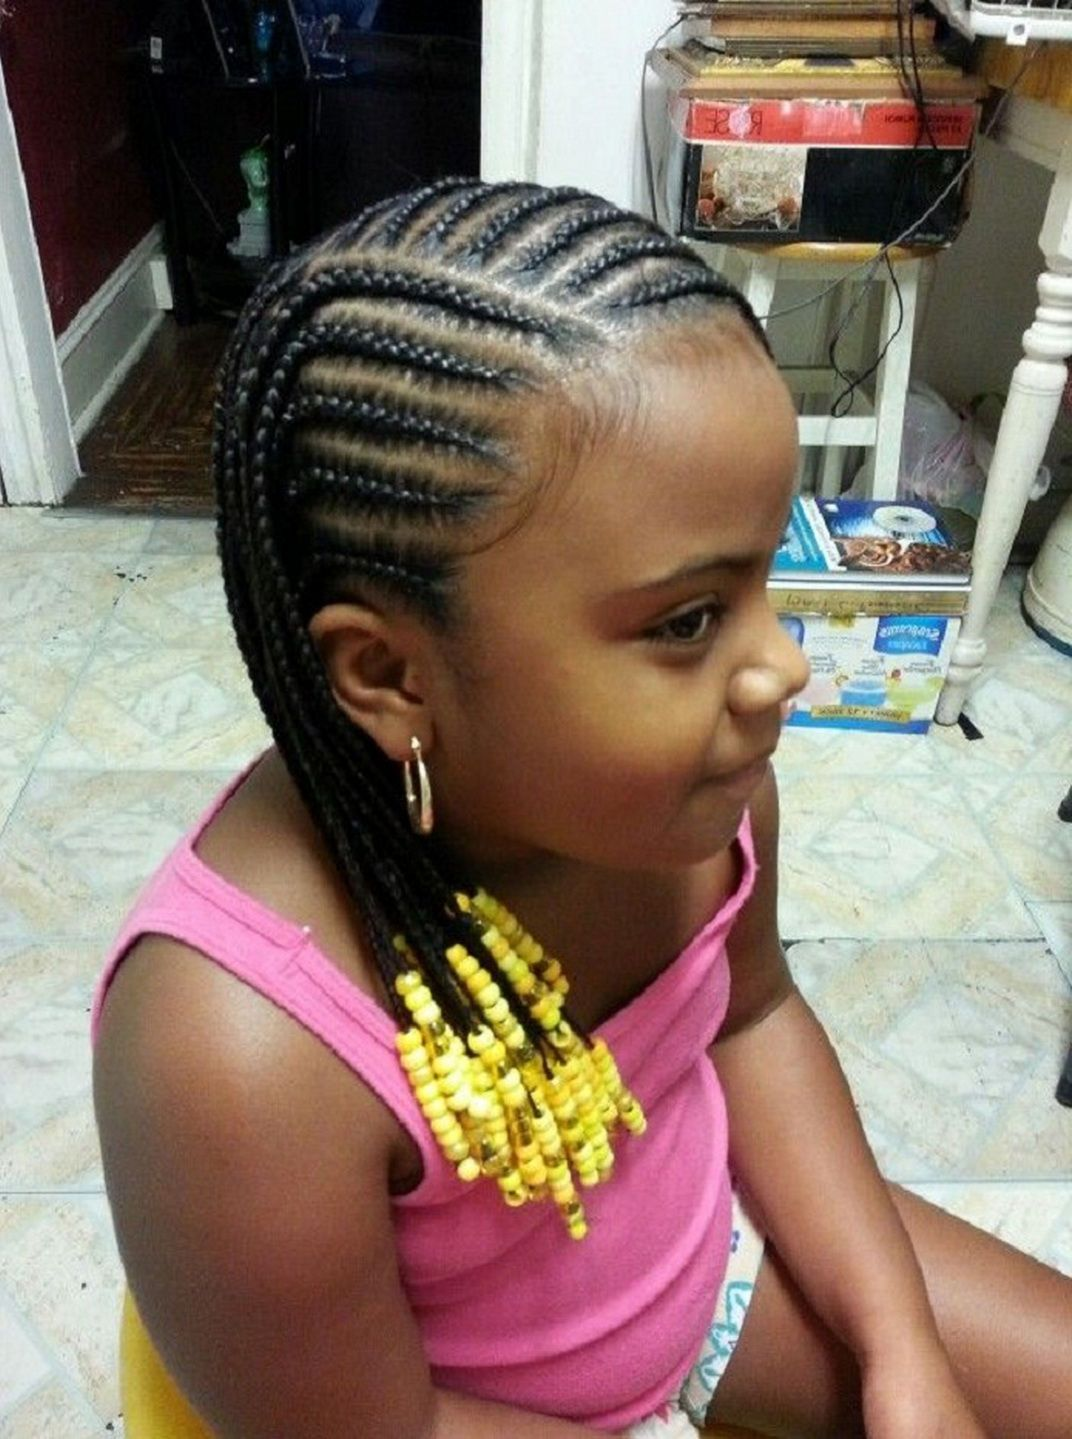 208 braided mohawk hairstyles for little girls | hair style